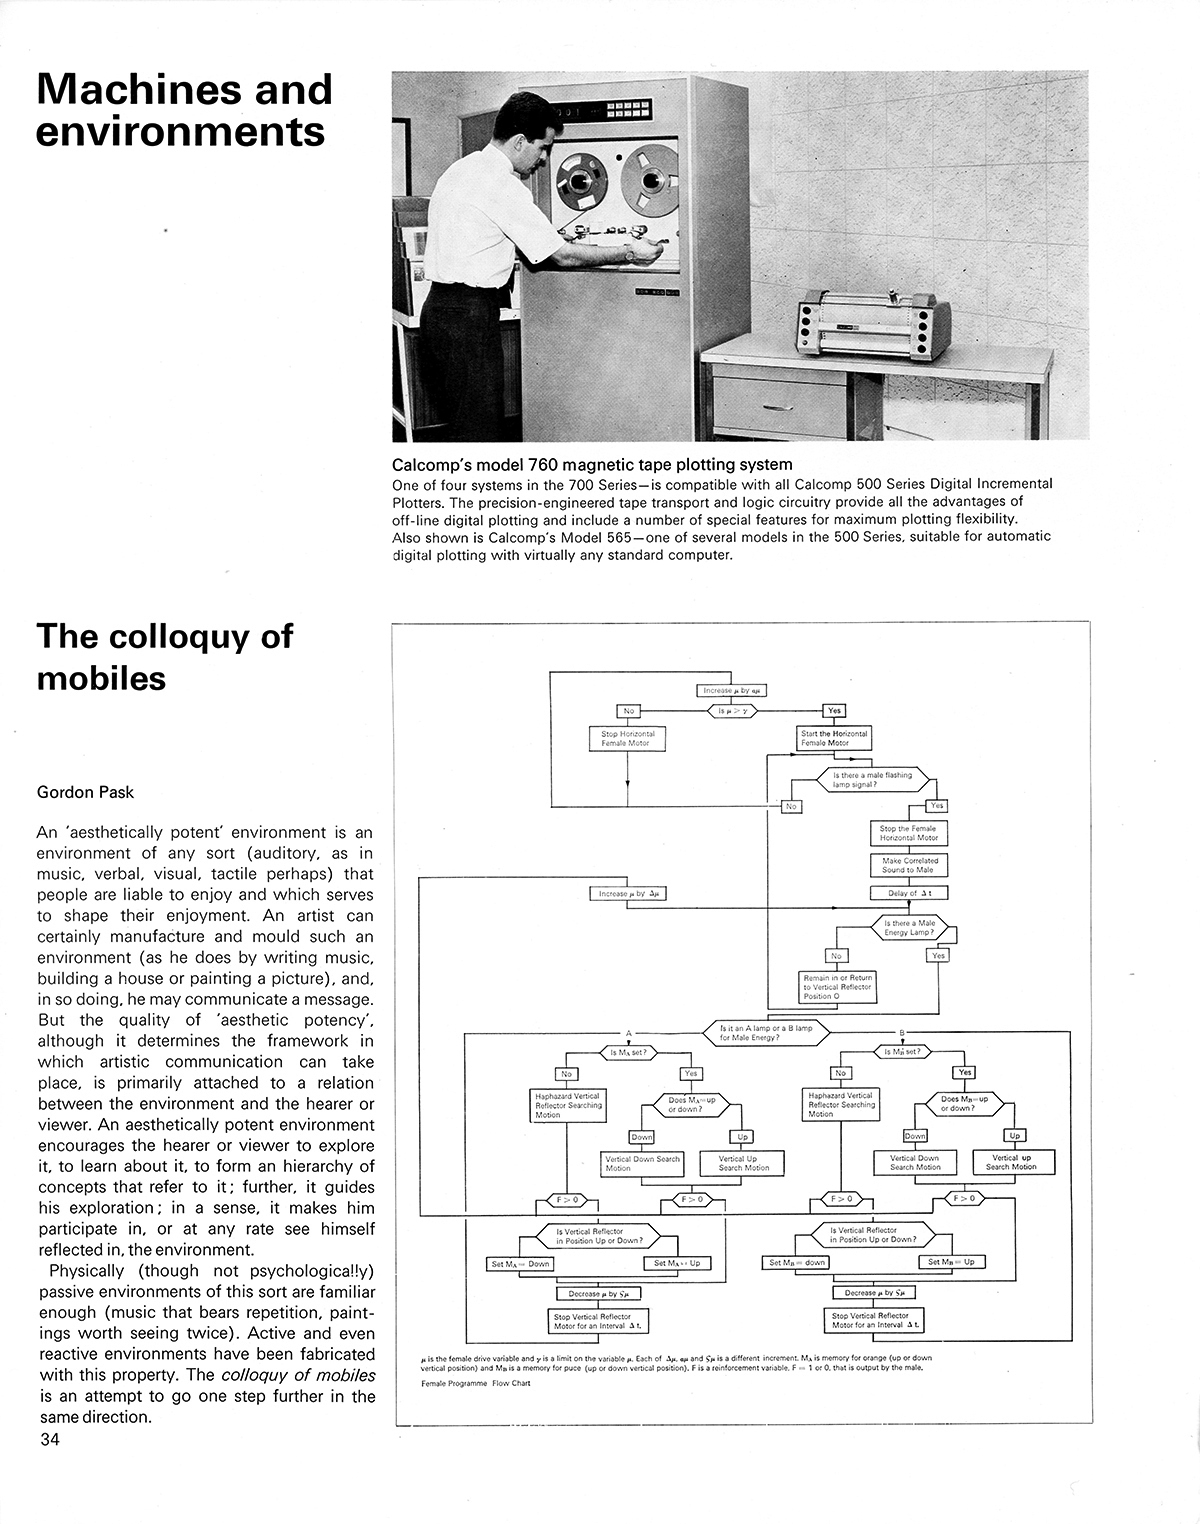 Machines and environments: The colloquy of mobiles by Gordon Pask. Cybernetic Serendipity: The Computer and the Arts, Studio International Special Issue, 1968, page 34.